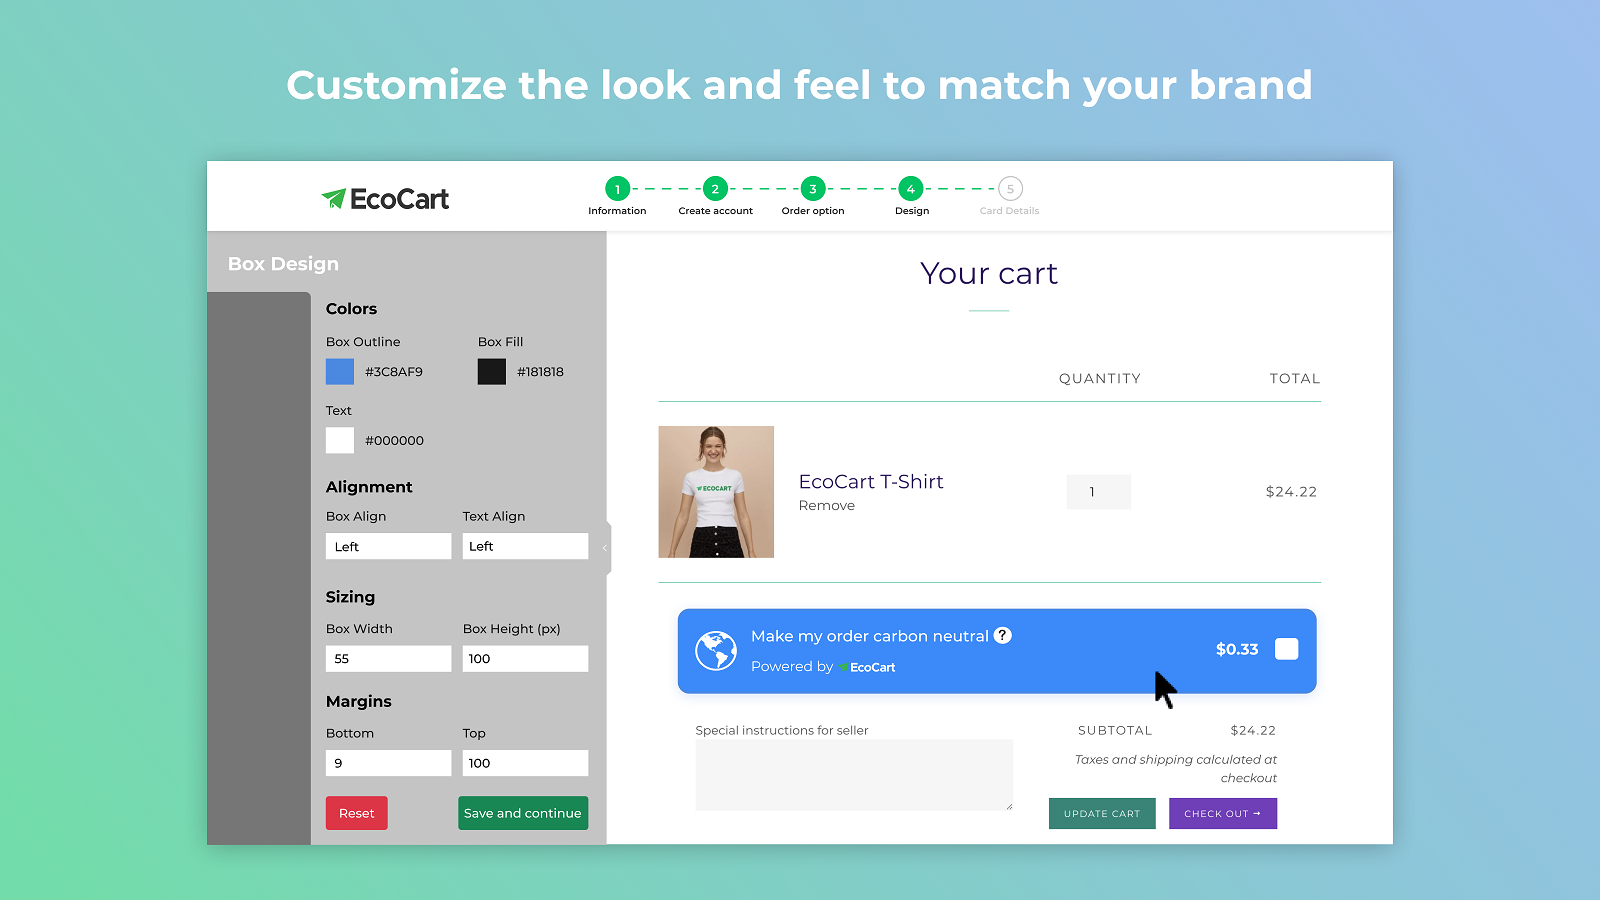 Completely customizable in your cart to match your brand